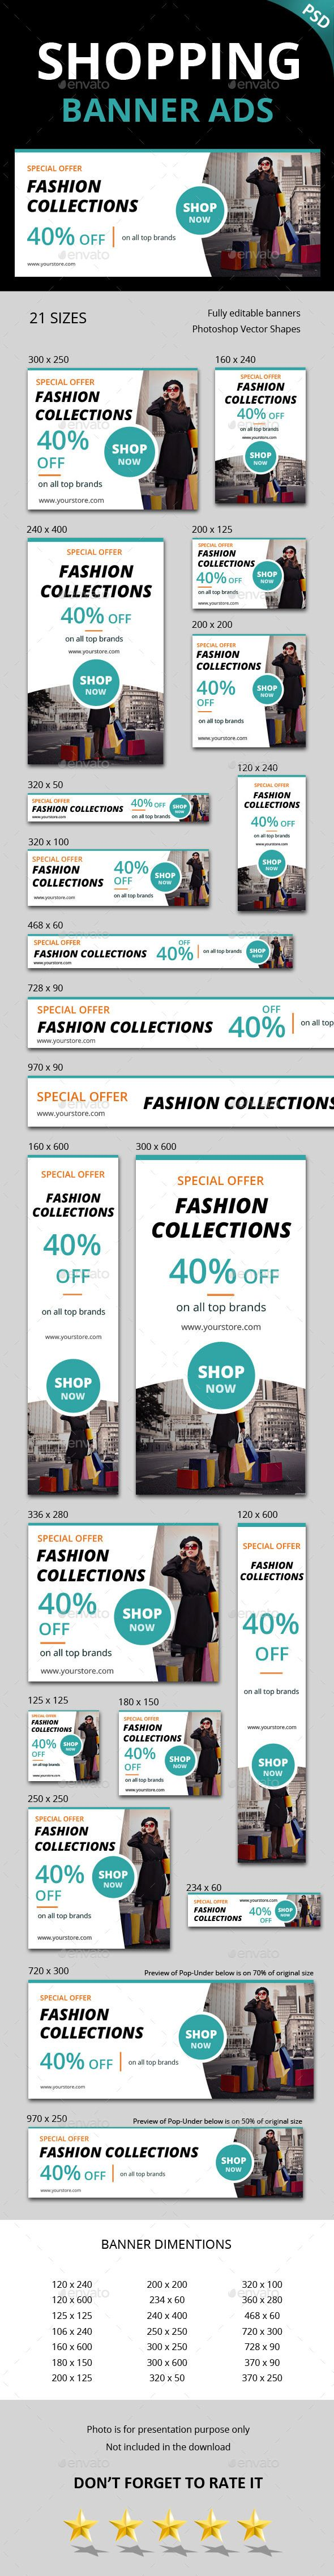 Shopping Ad Banner - Banners & Ads Web Elements